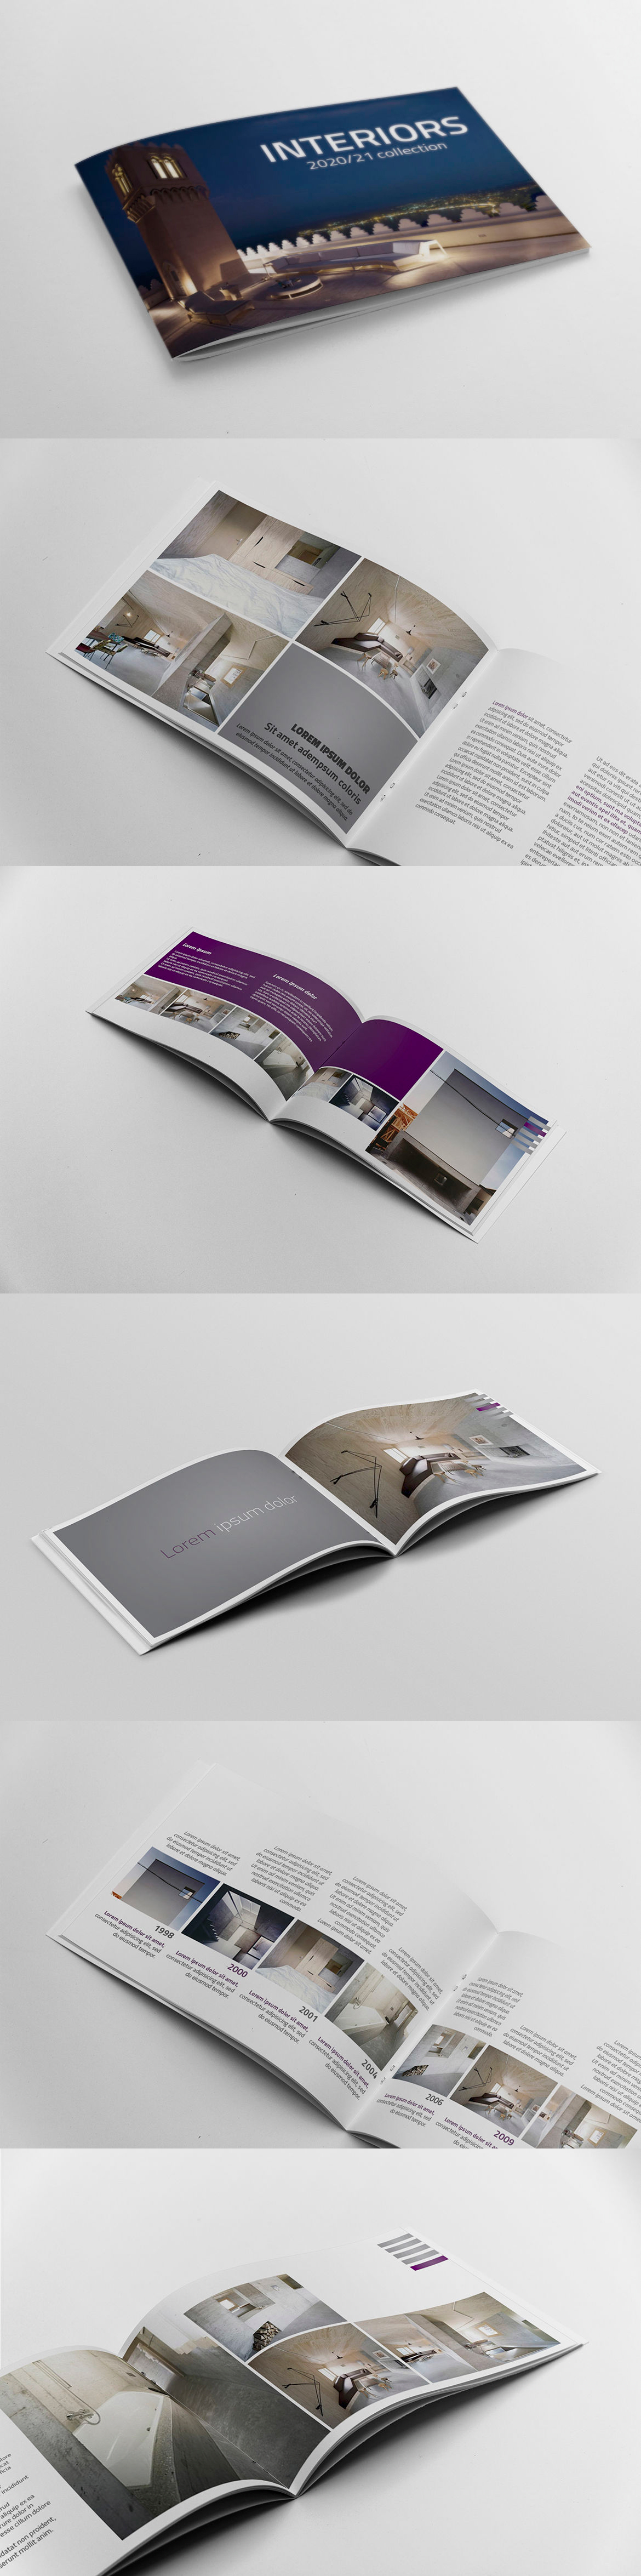 Booklet Catalogue Template AI, EPS, INDD, PSD | Catalog Templates ...